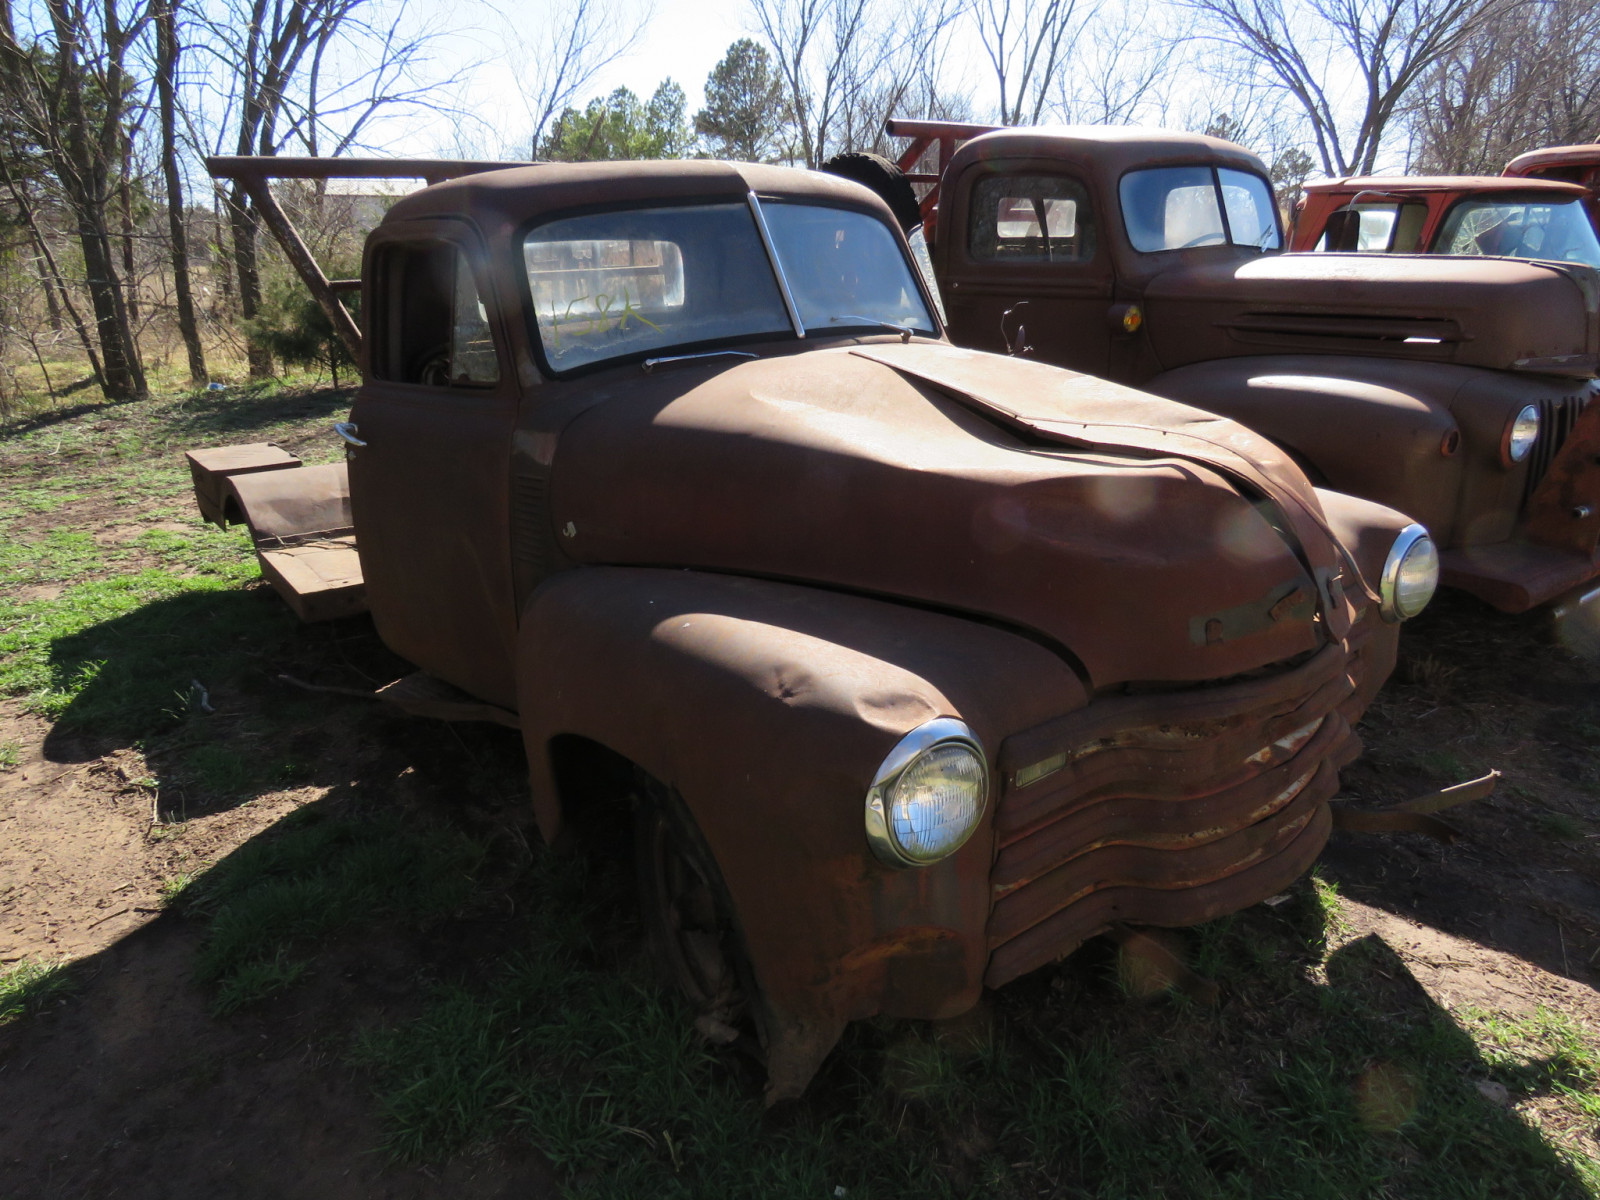 Chevrolet Truck for project or parts - Image 1